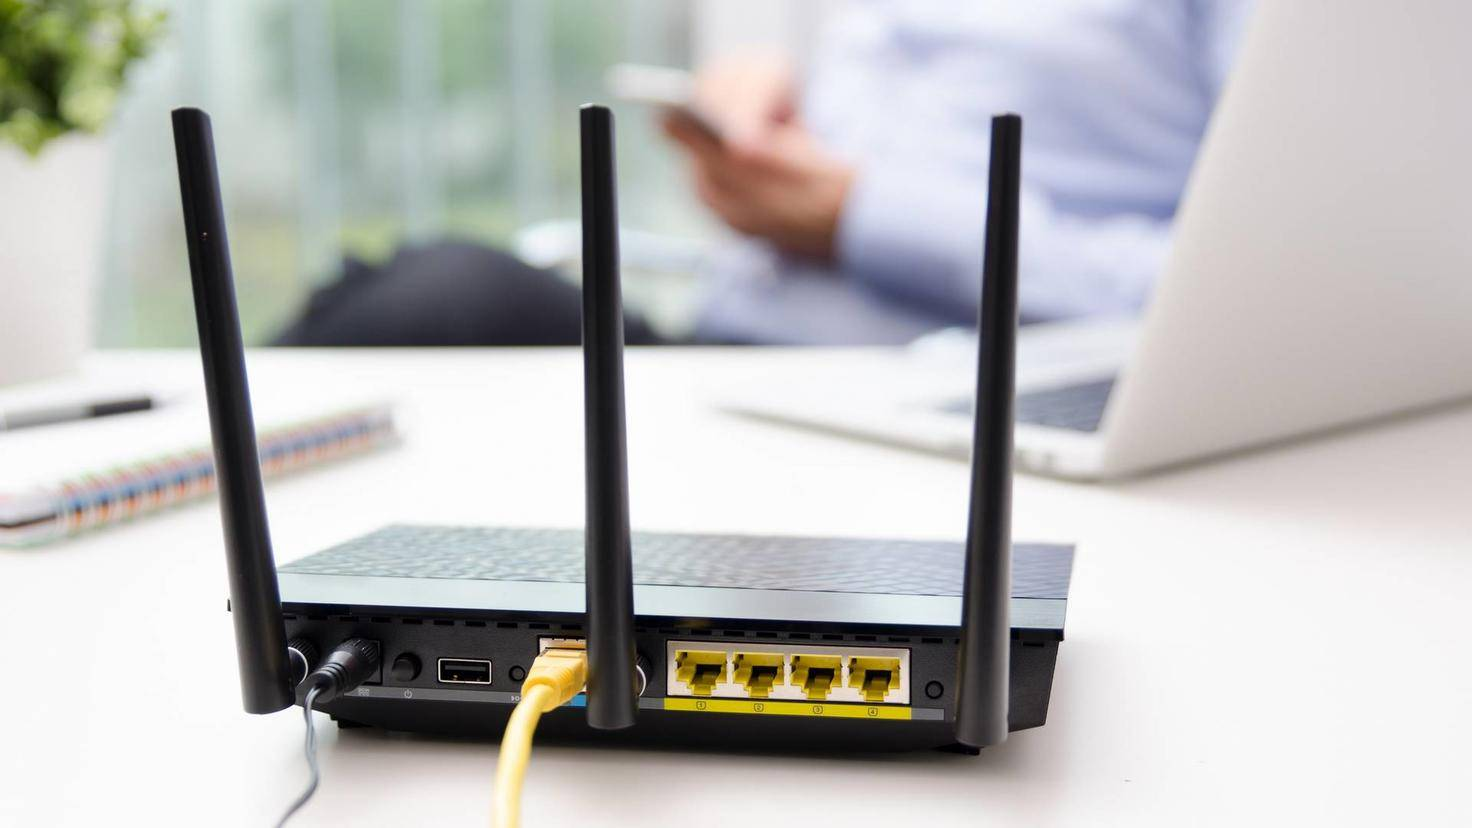 Wireless router and man using a smart phone in home